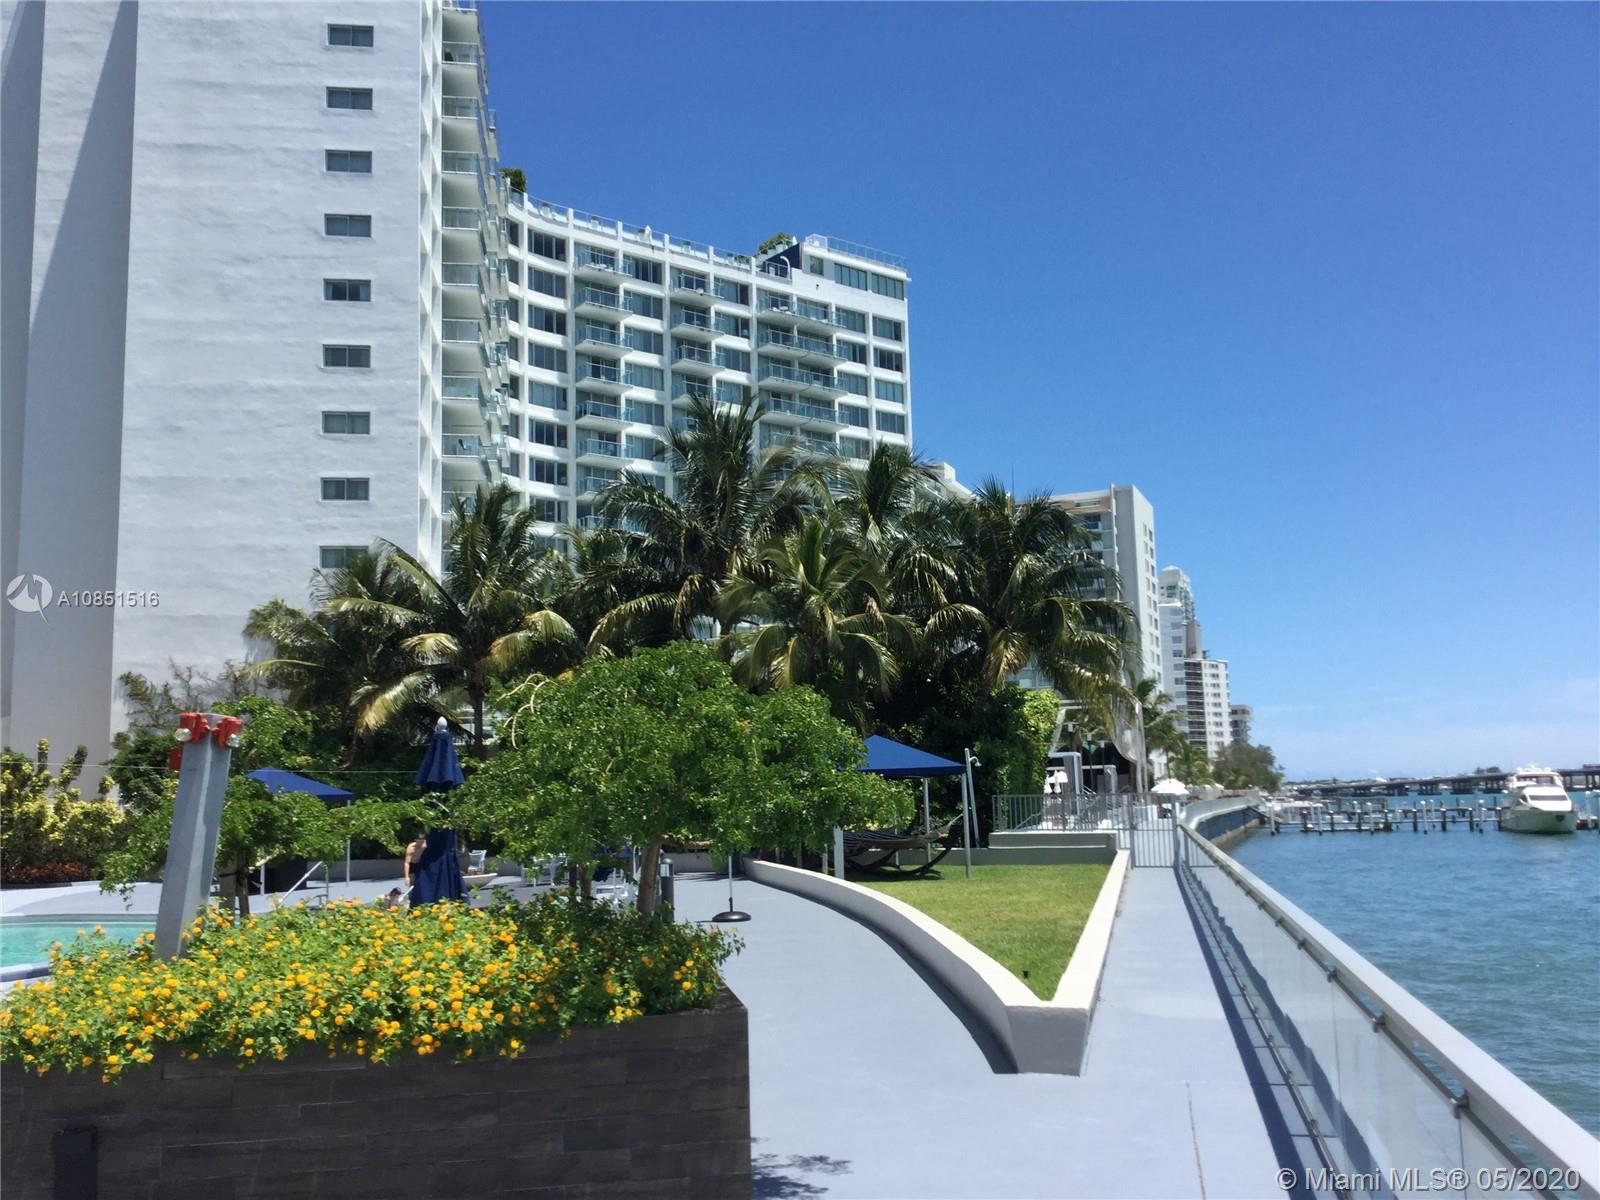 1000  West Ave #1101 For Sale A10851516, FL